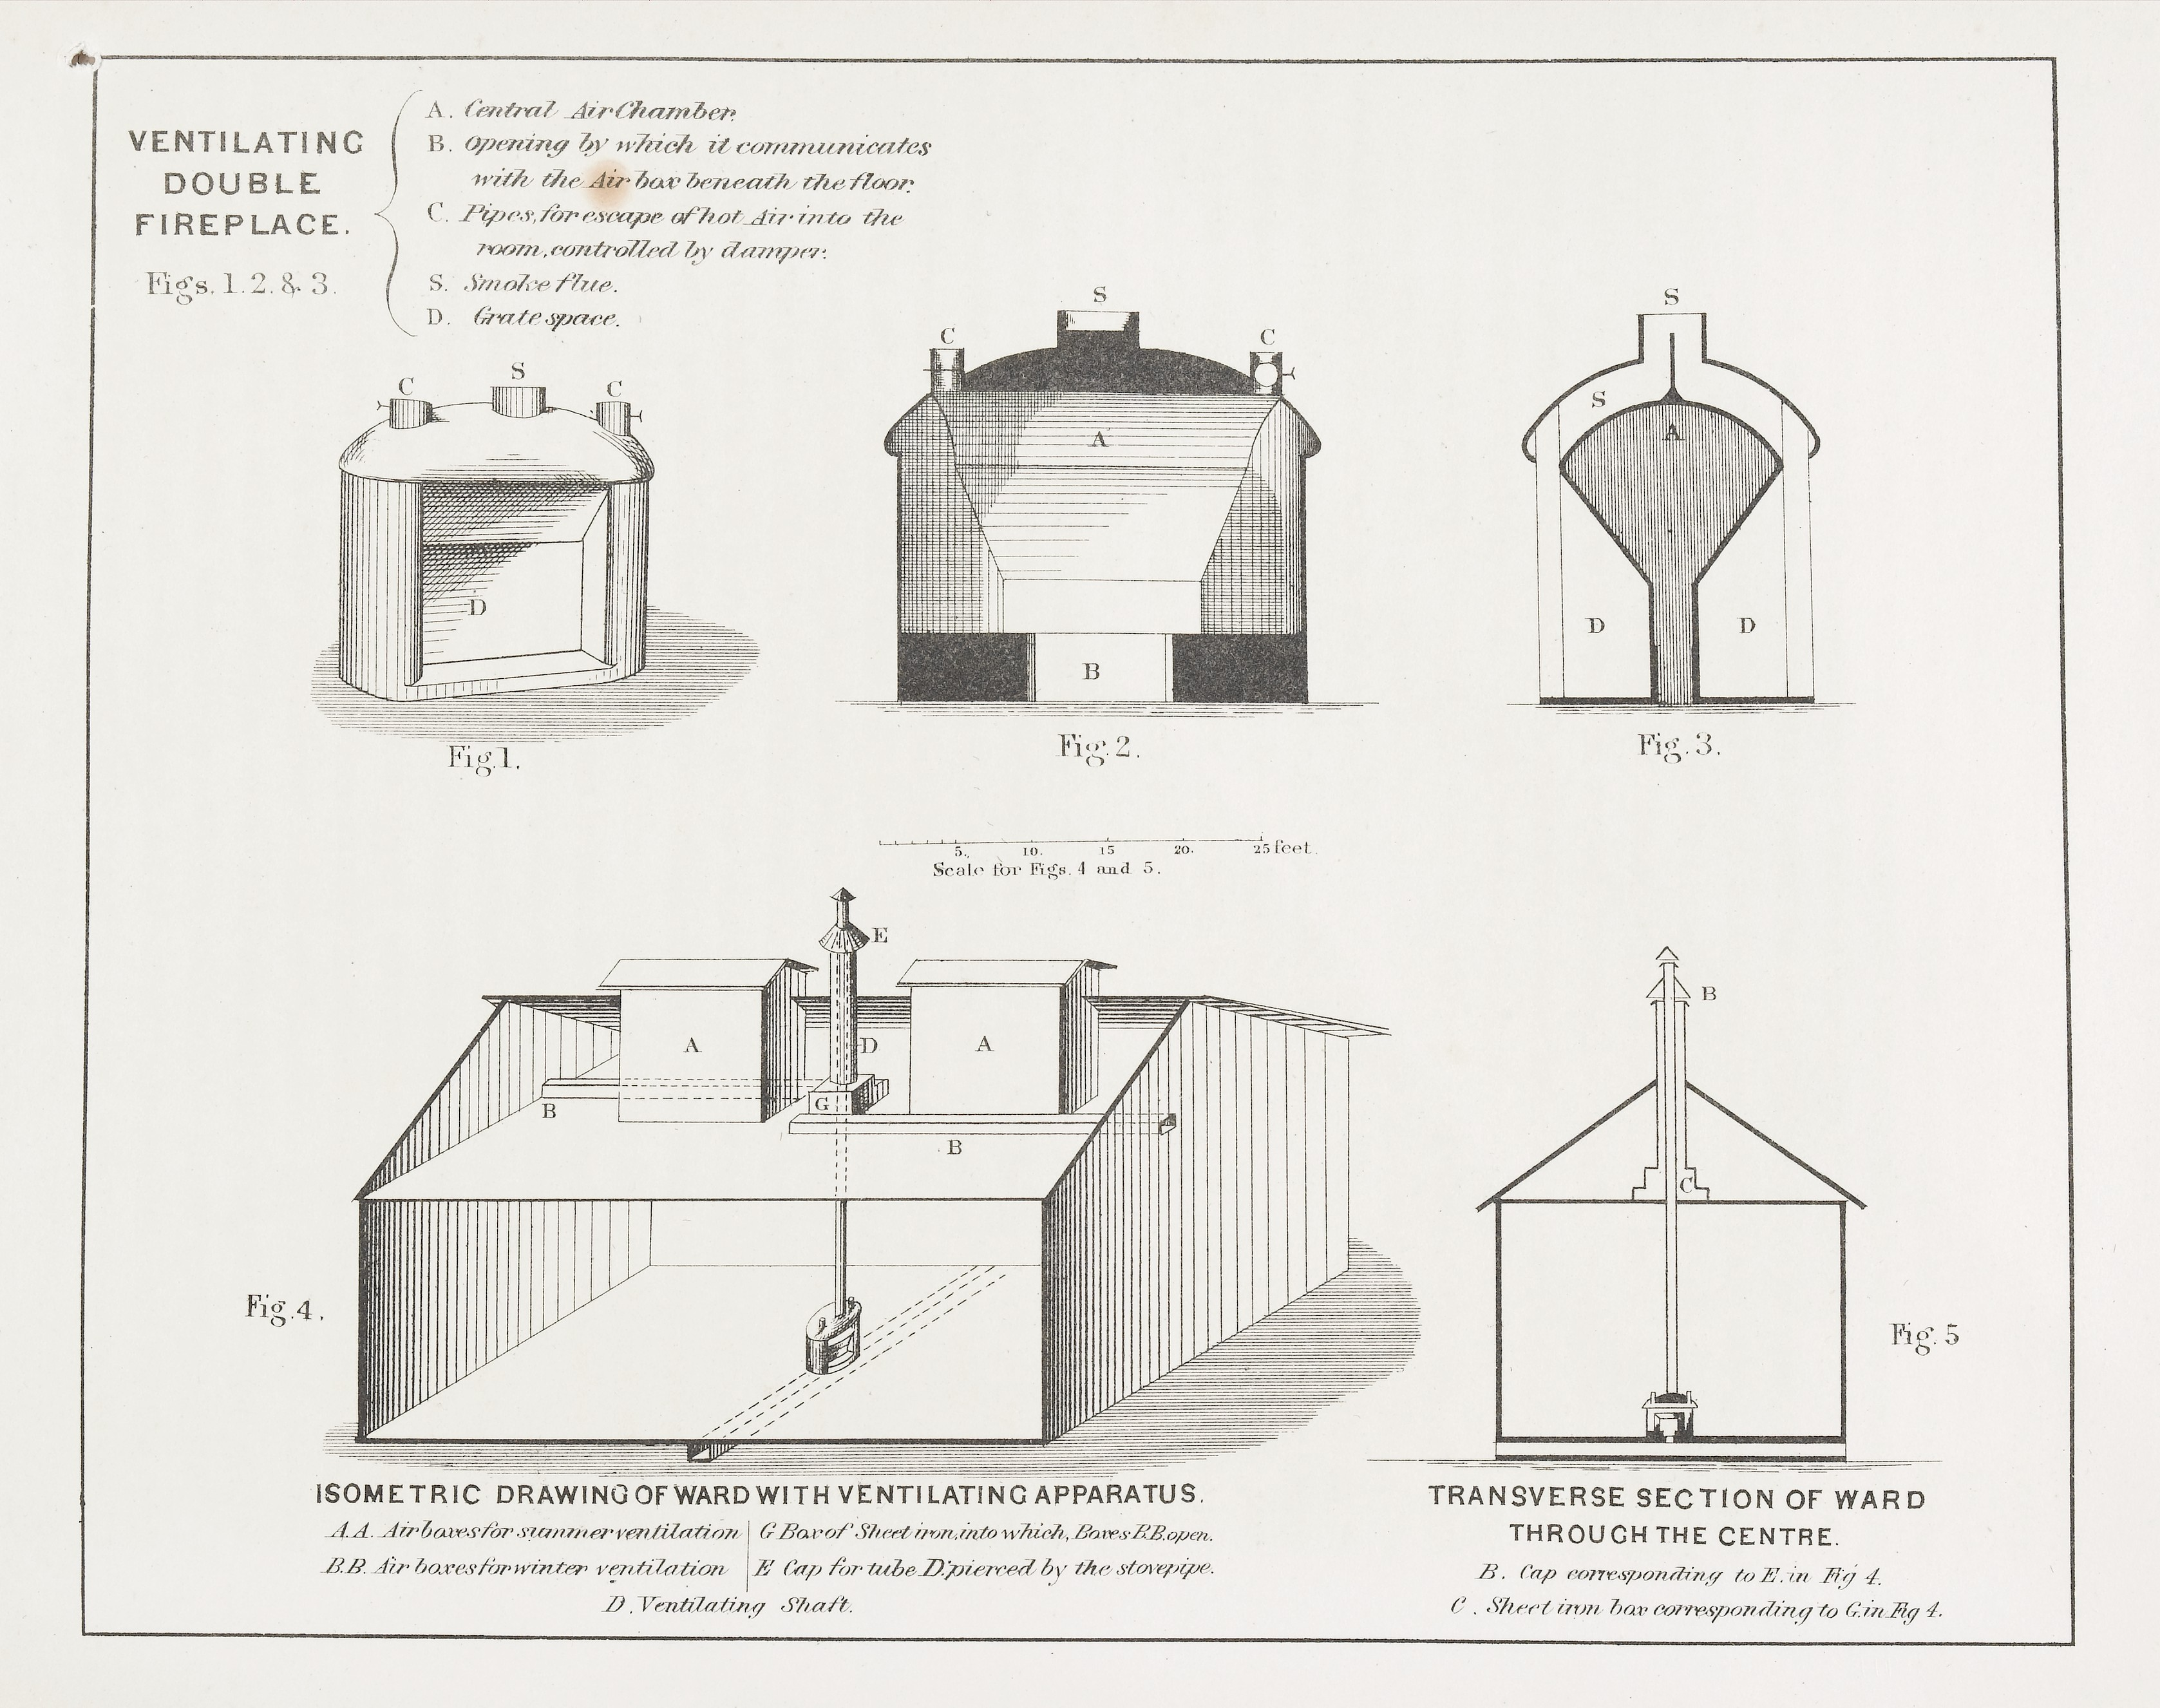 types of architecture - Isometric Easy Sketches of ward with ventilating apparatus